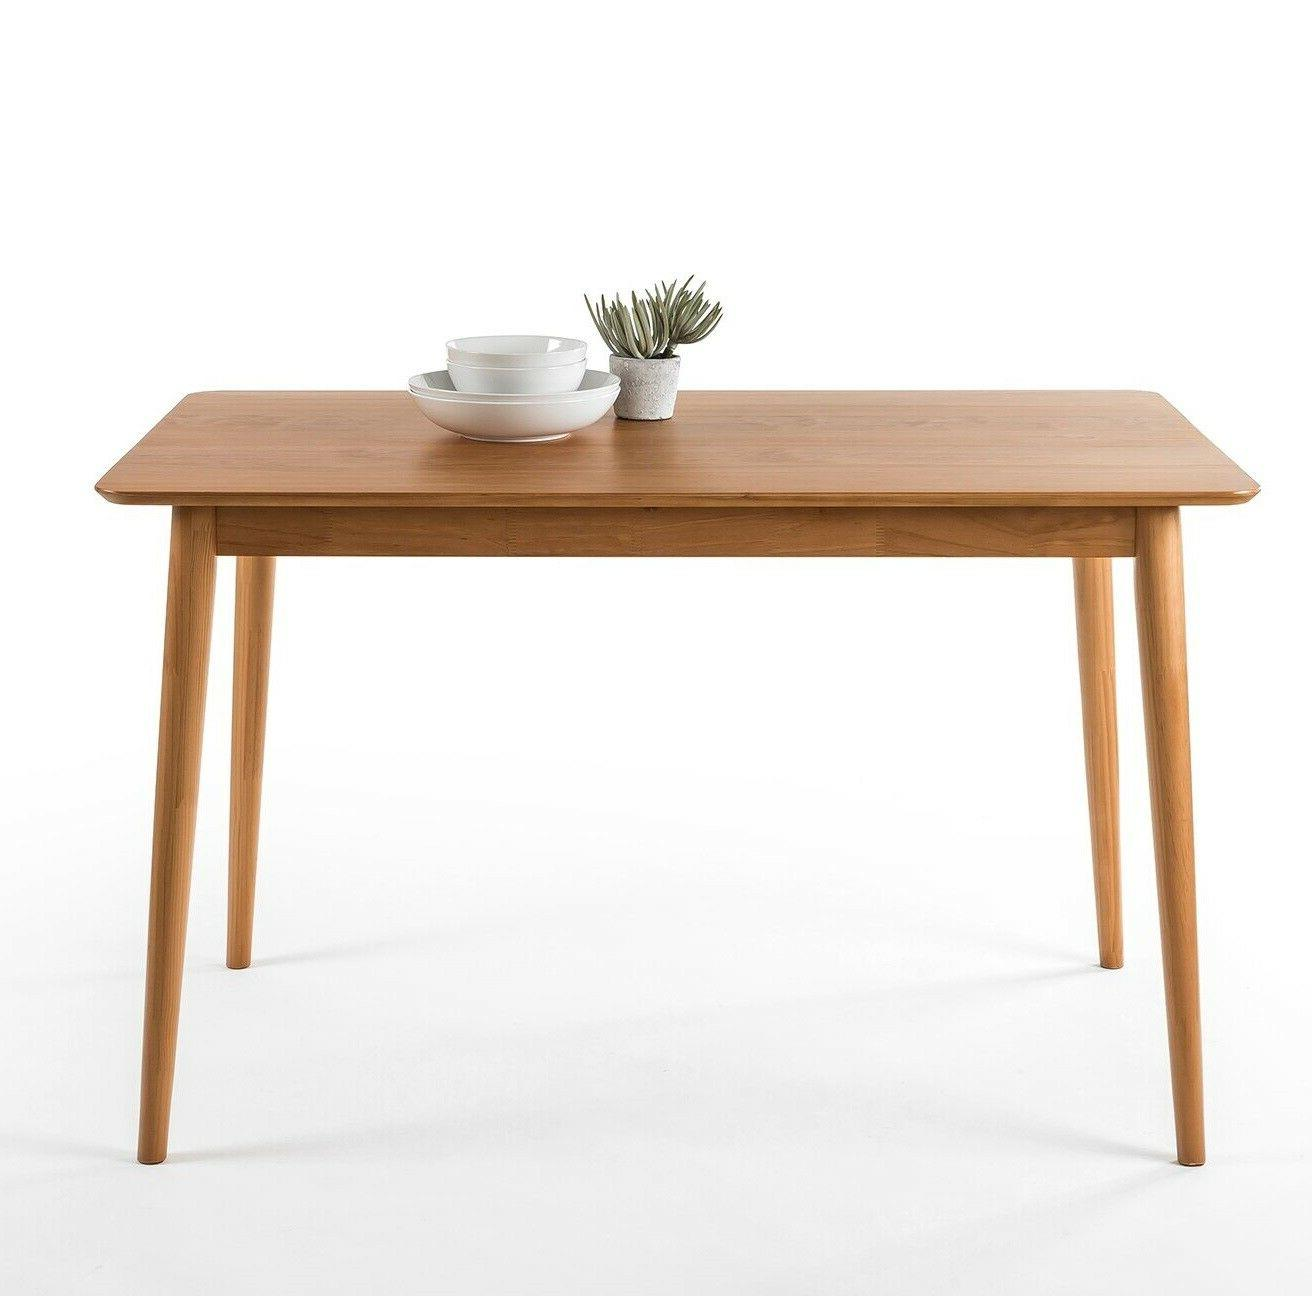 modern wooden dining table kitchen home mid